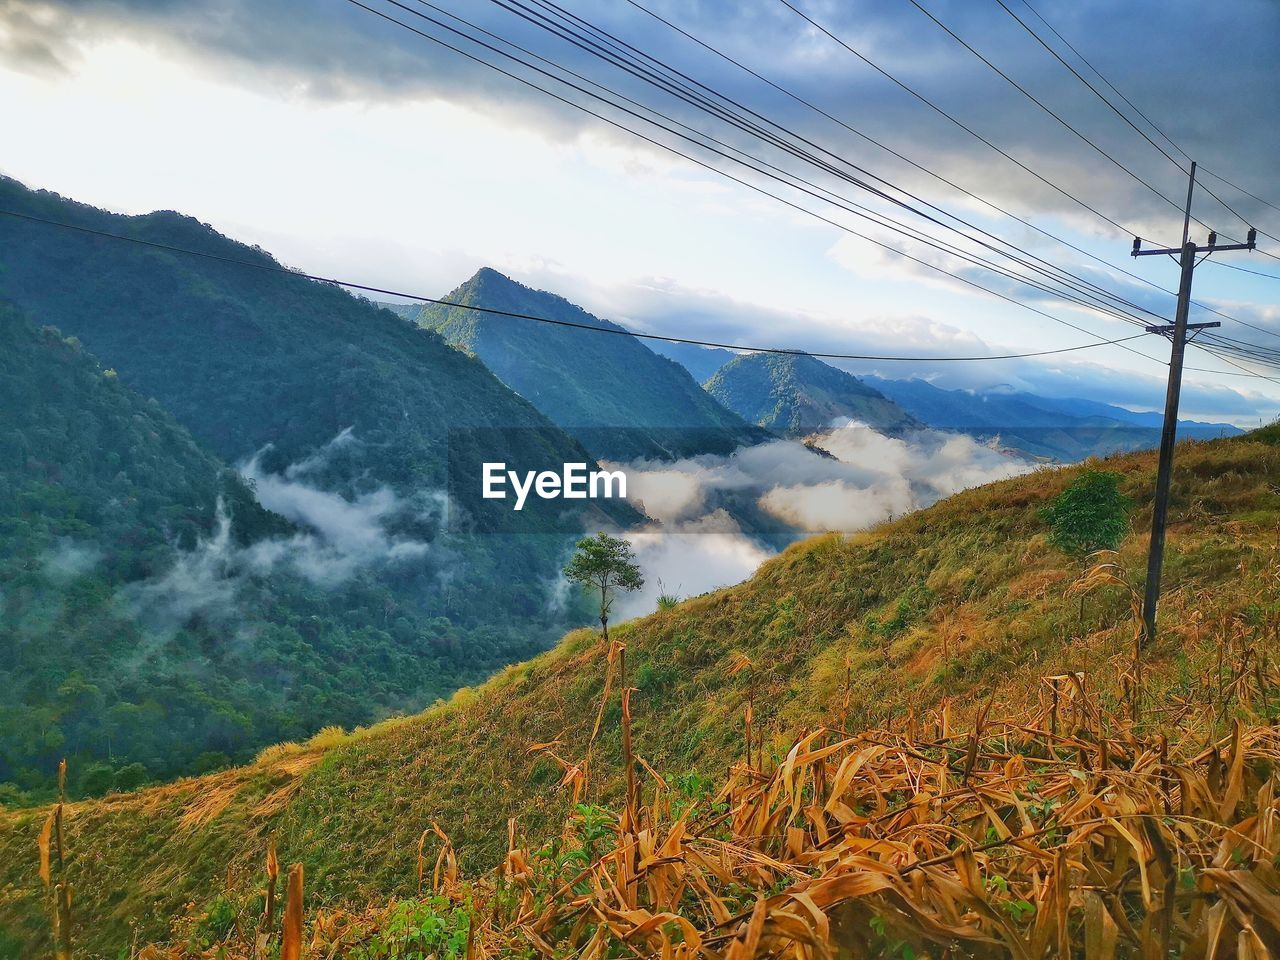 mountain, scenics - nature, beauty in nature, sky, cable, cloud - sky, tranquil scene, landscape, electricity, tranquility, environment, no people, nature, non-urban scene, mountain range, technology, day, connection, power line, electricity pylon, outdoors, power supply